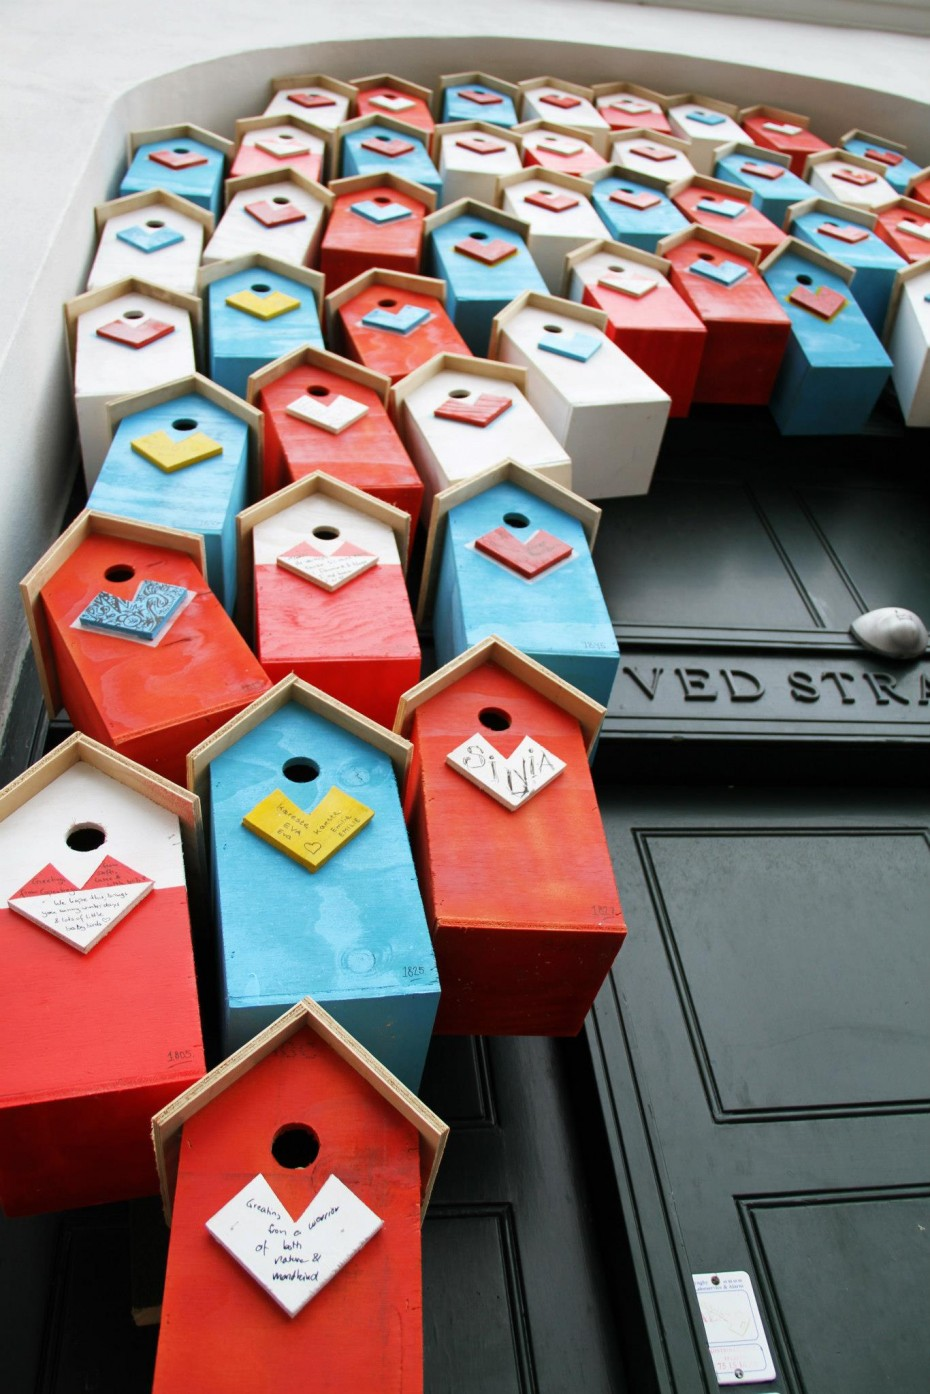 Recycled nordic birdhouse by recycle artist Thomas Dambo